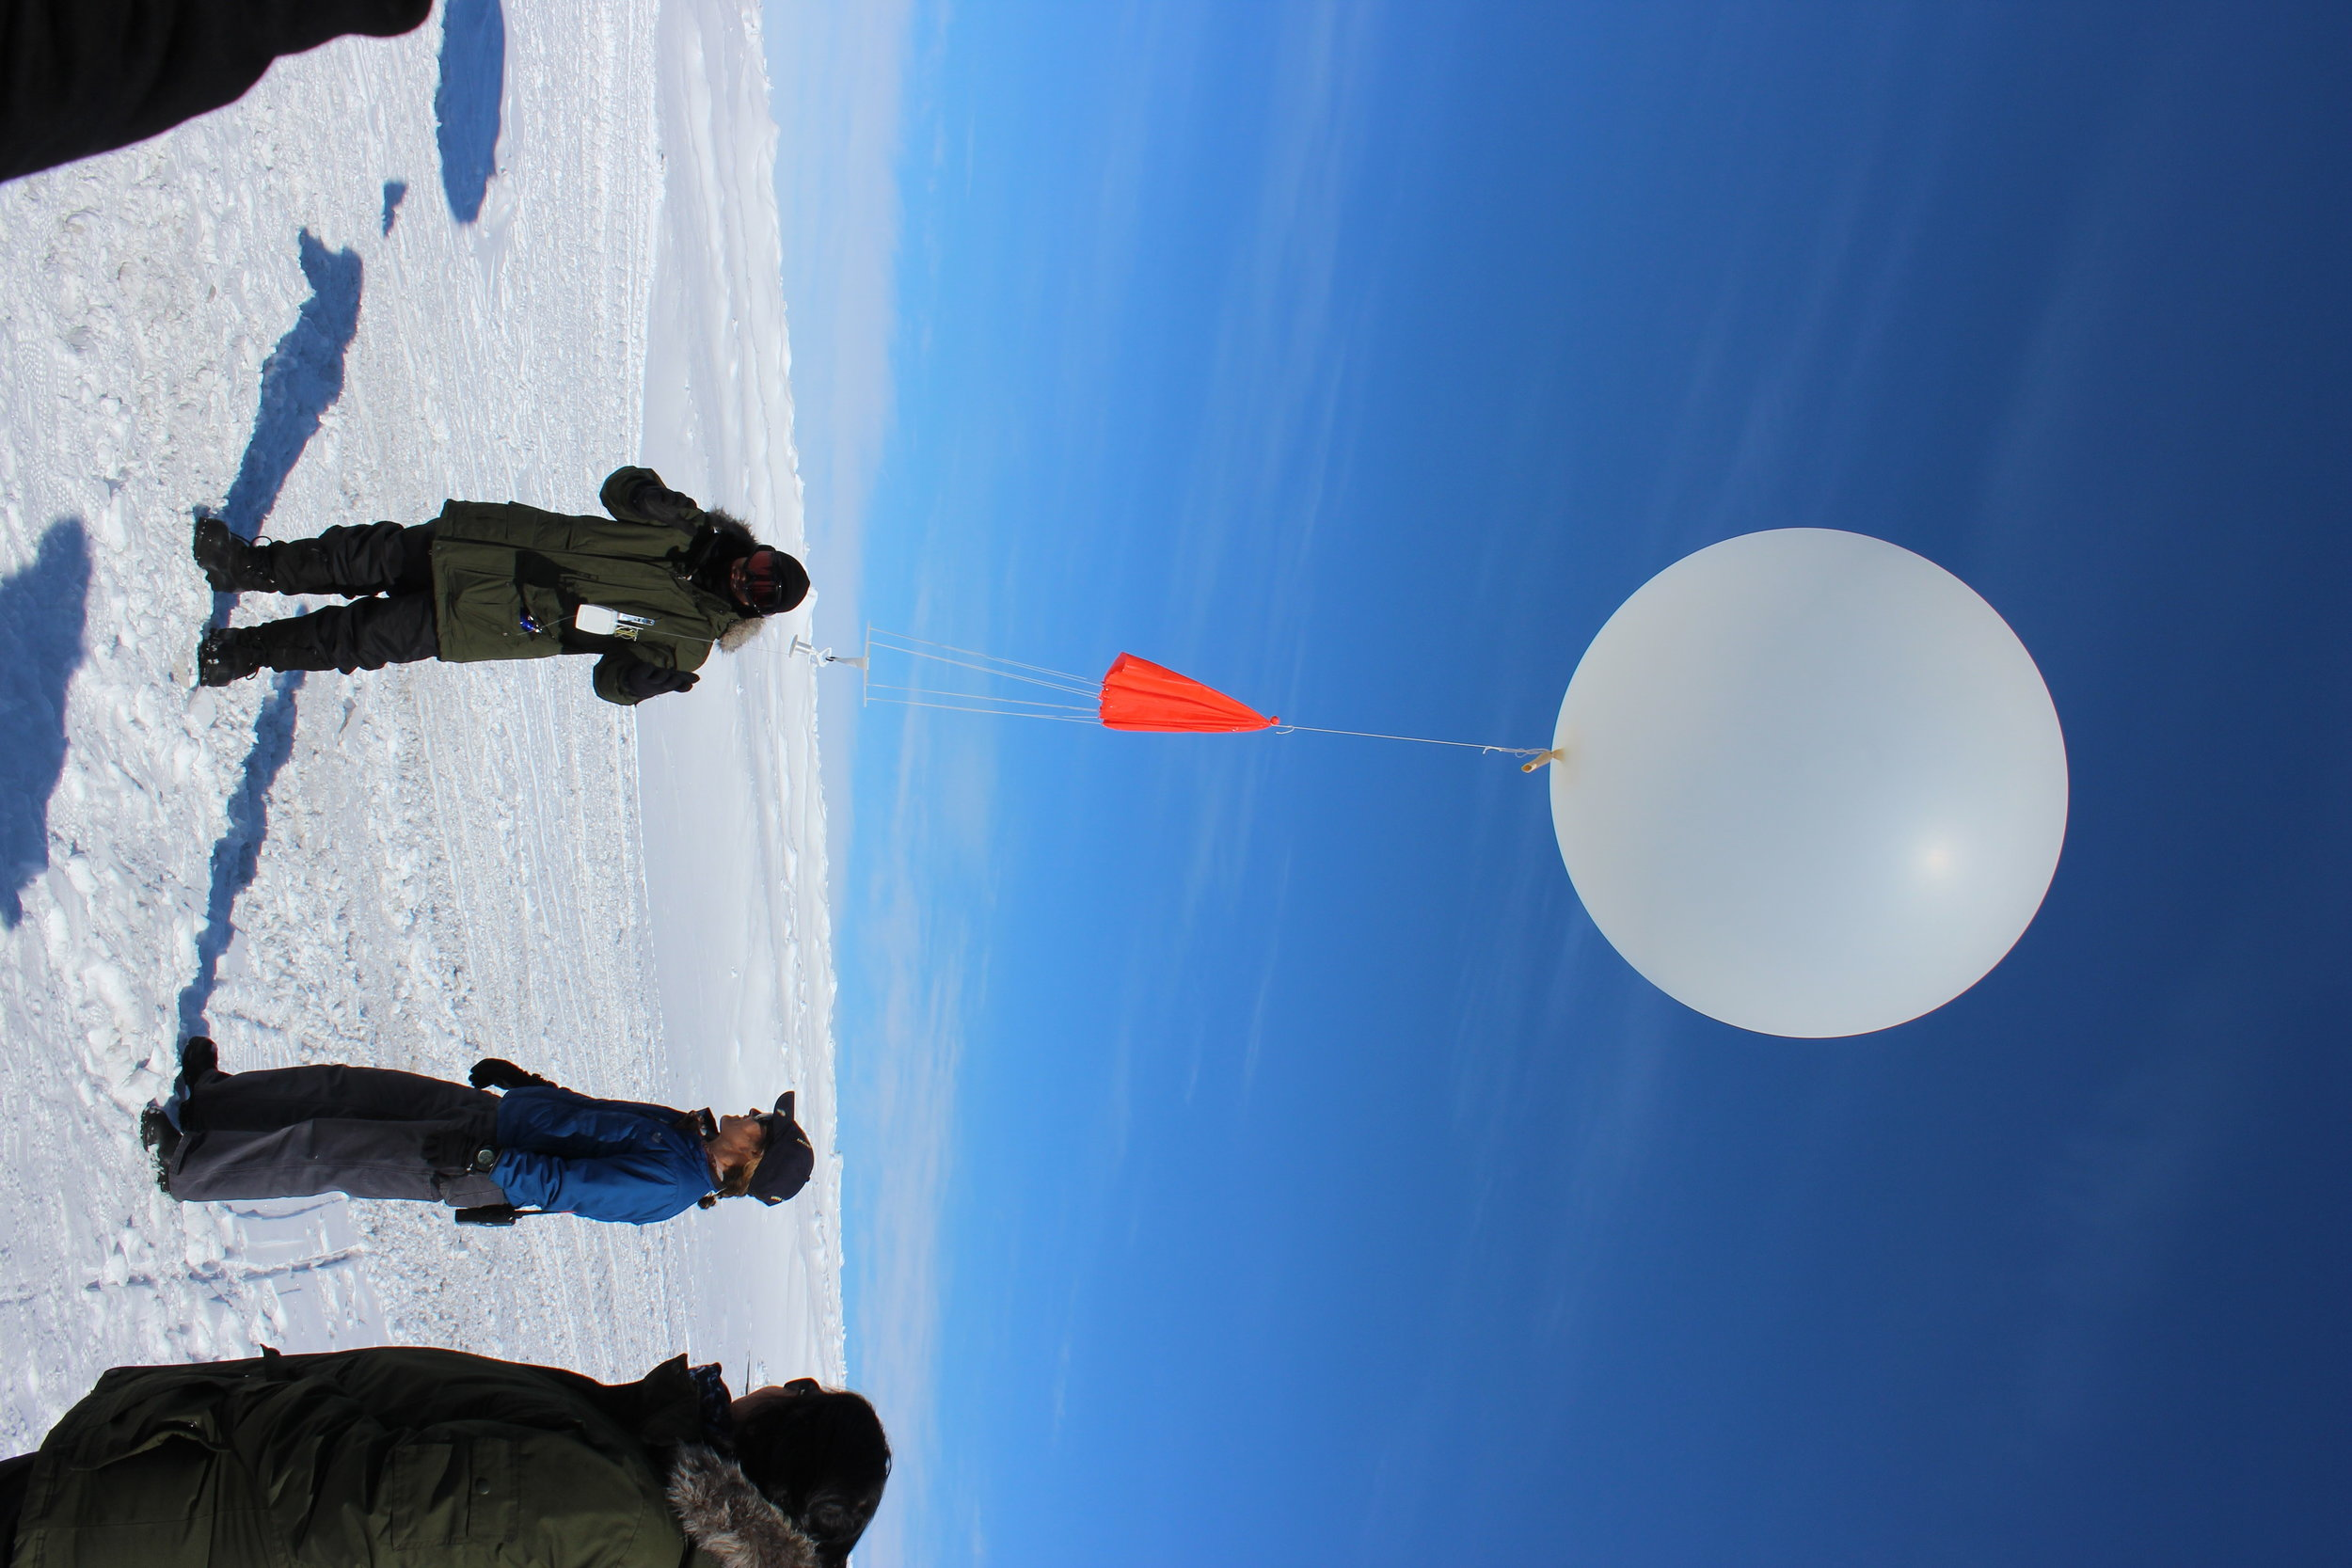 JSEP students learn about weather balloons on the ice. JSEP introduces select high school students to a variety of National Science Foundation-supported Arctic research.